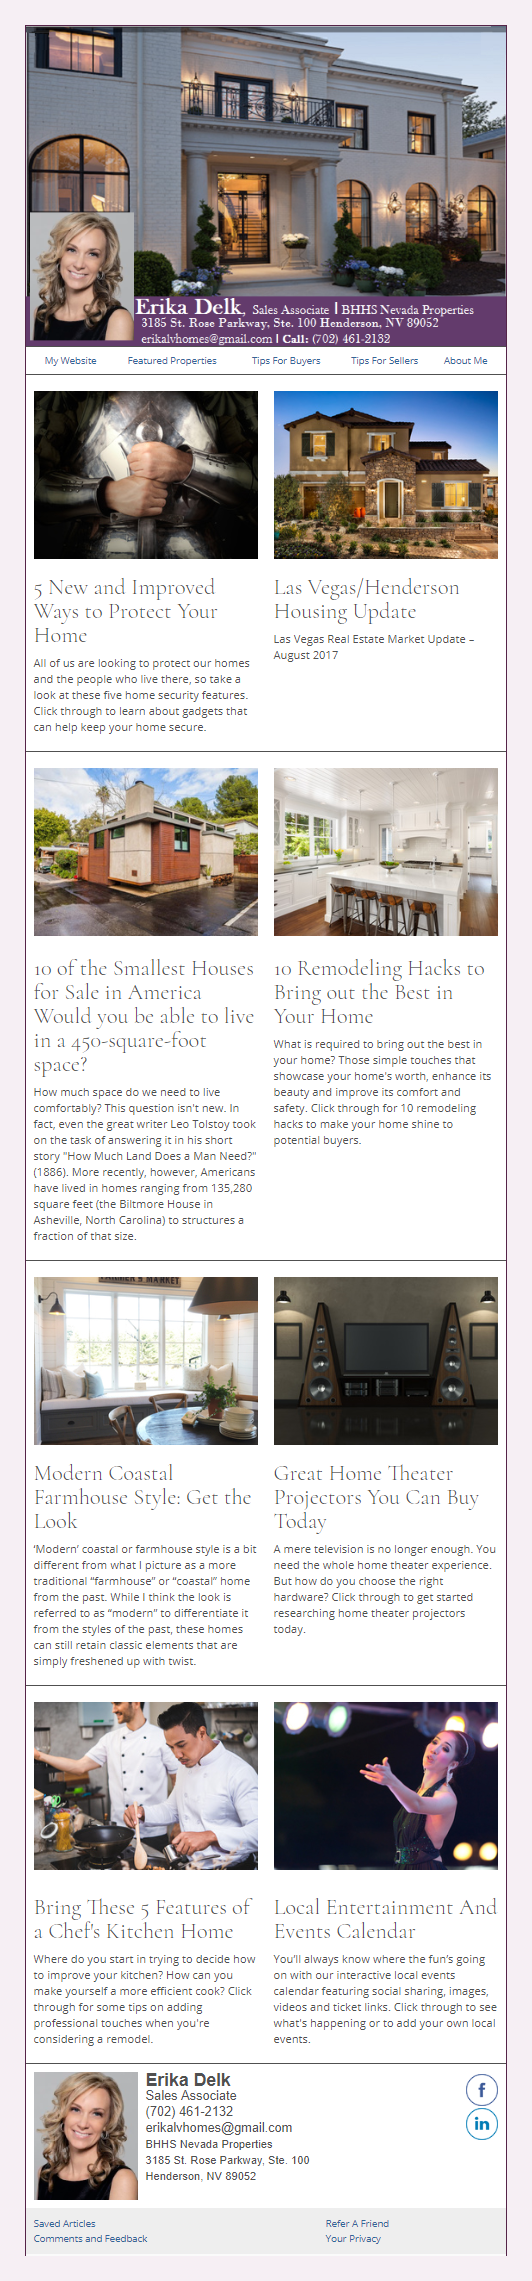 BHHS Berkshire Hathaway Home Services - HomeActions Sample Email Newsletter